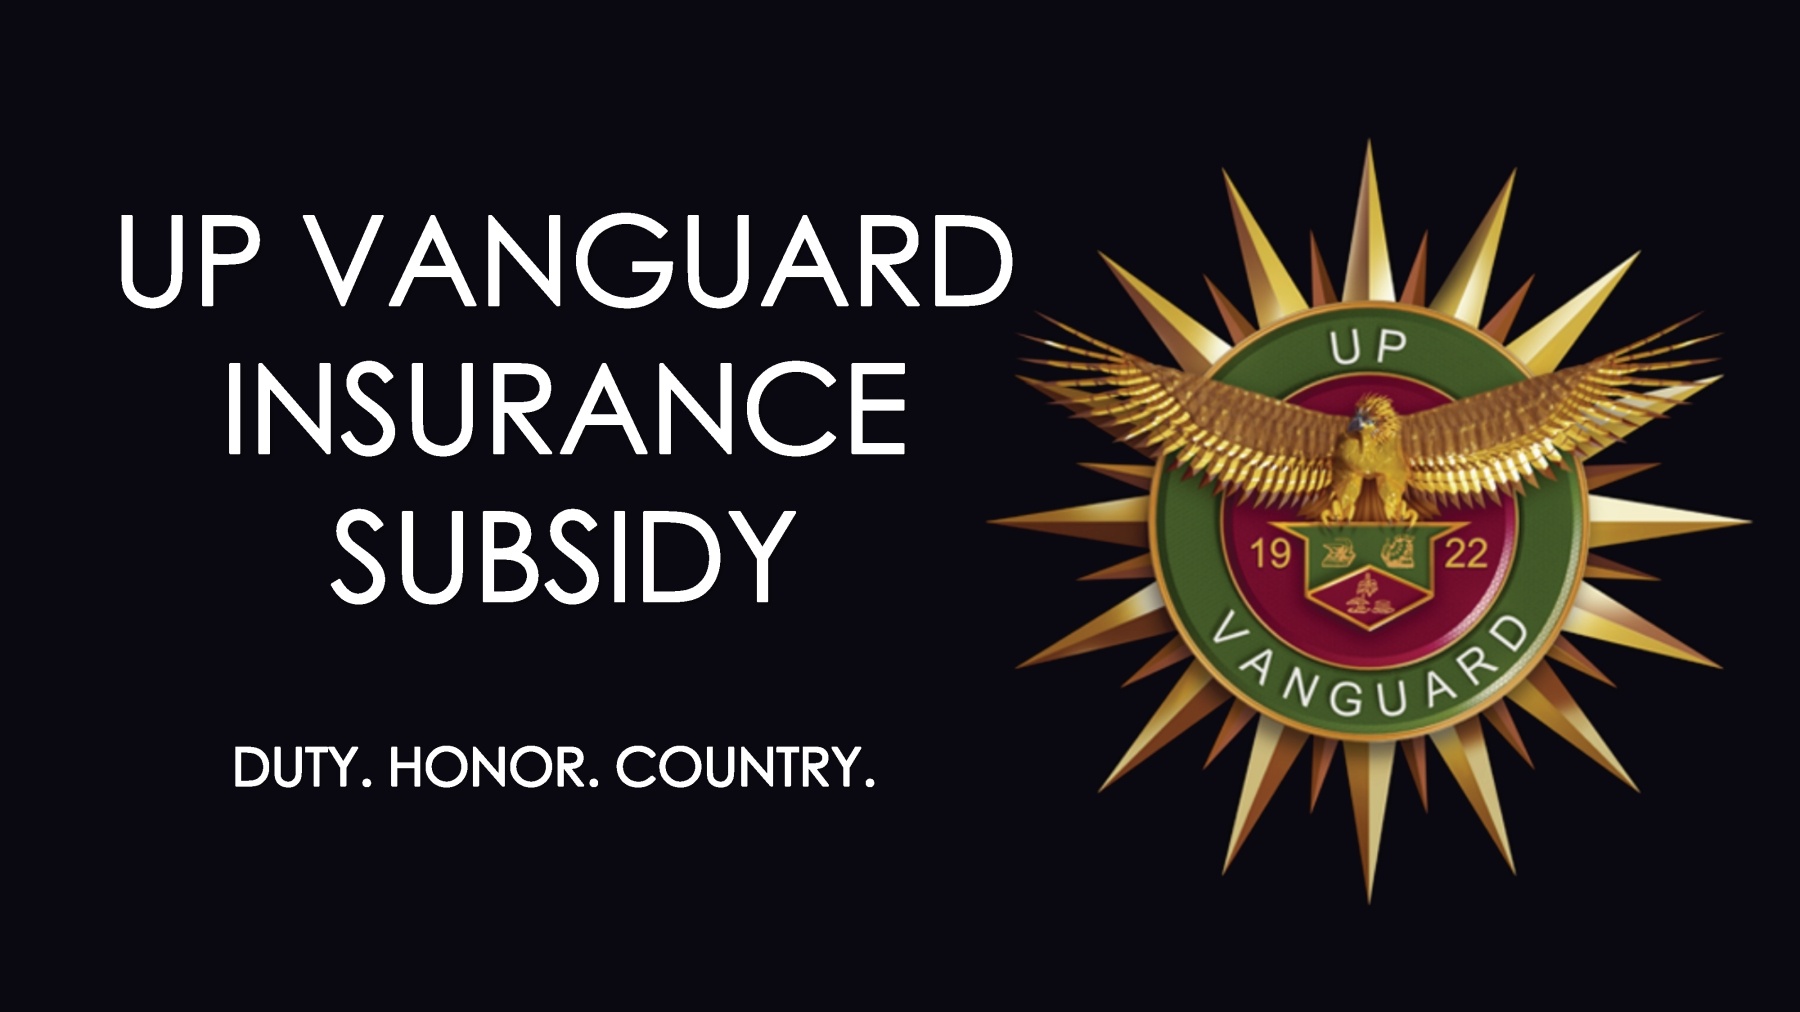 UP Vanguard Insurance Subsidy